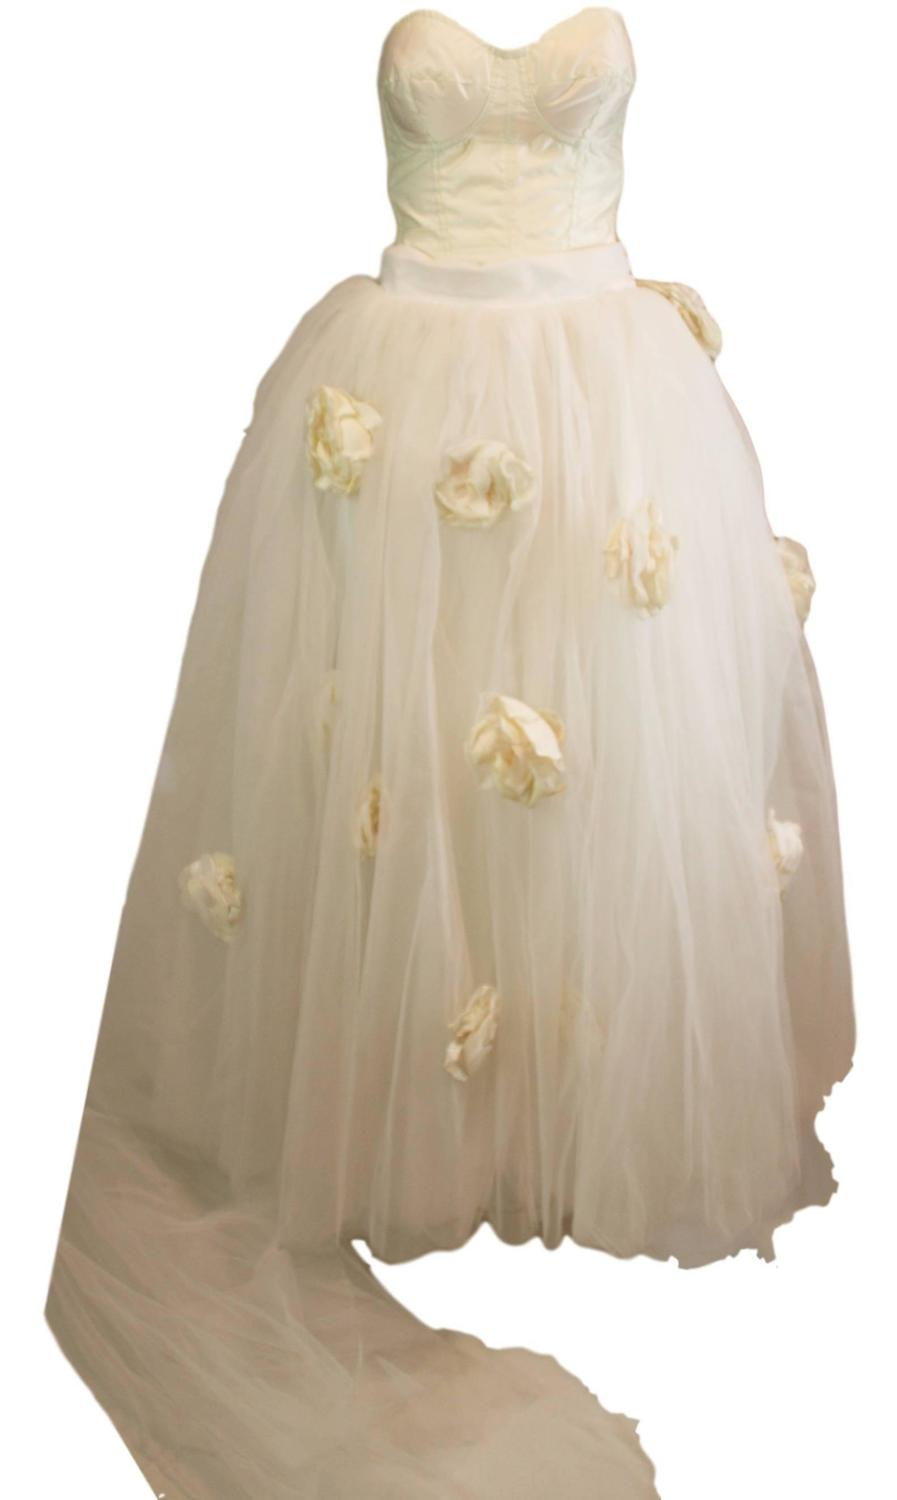 S s 1992 dolce and gabbana bridal wedding gown bustier for Dolce gabbana wedding dress